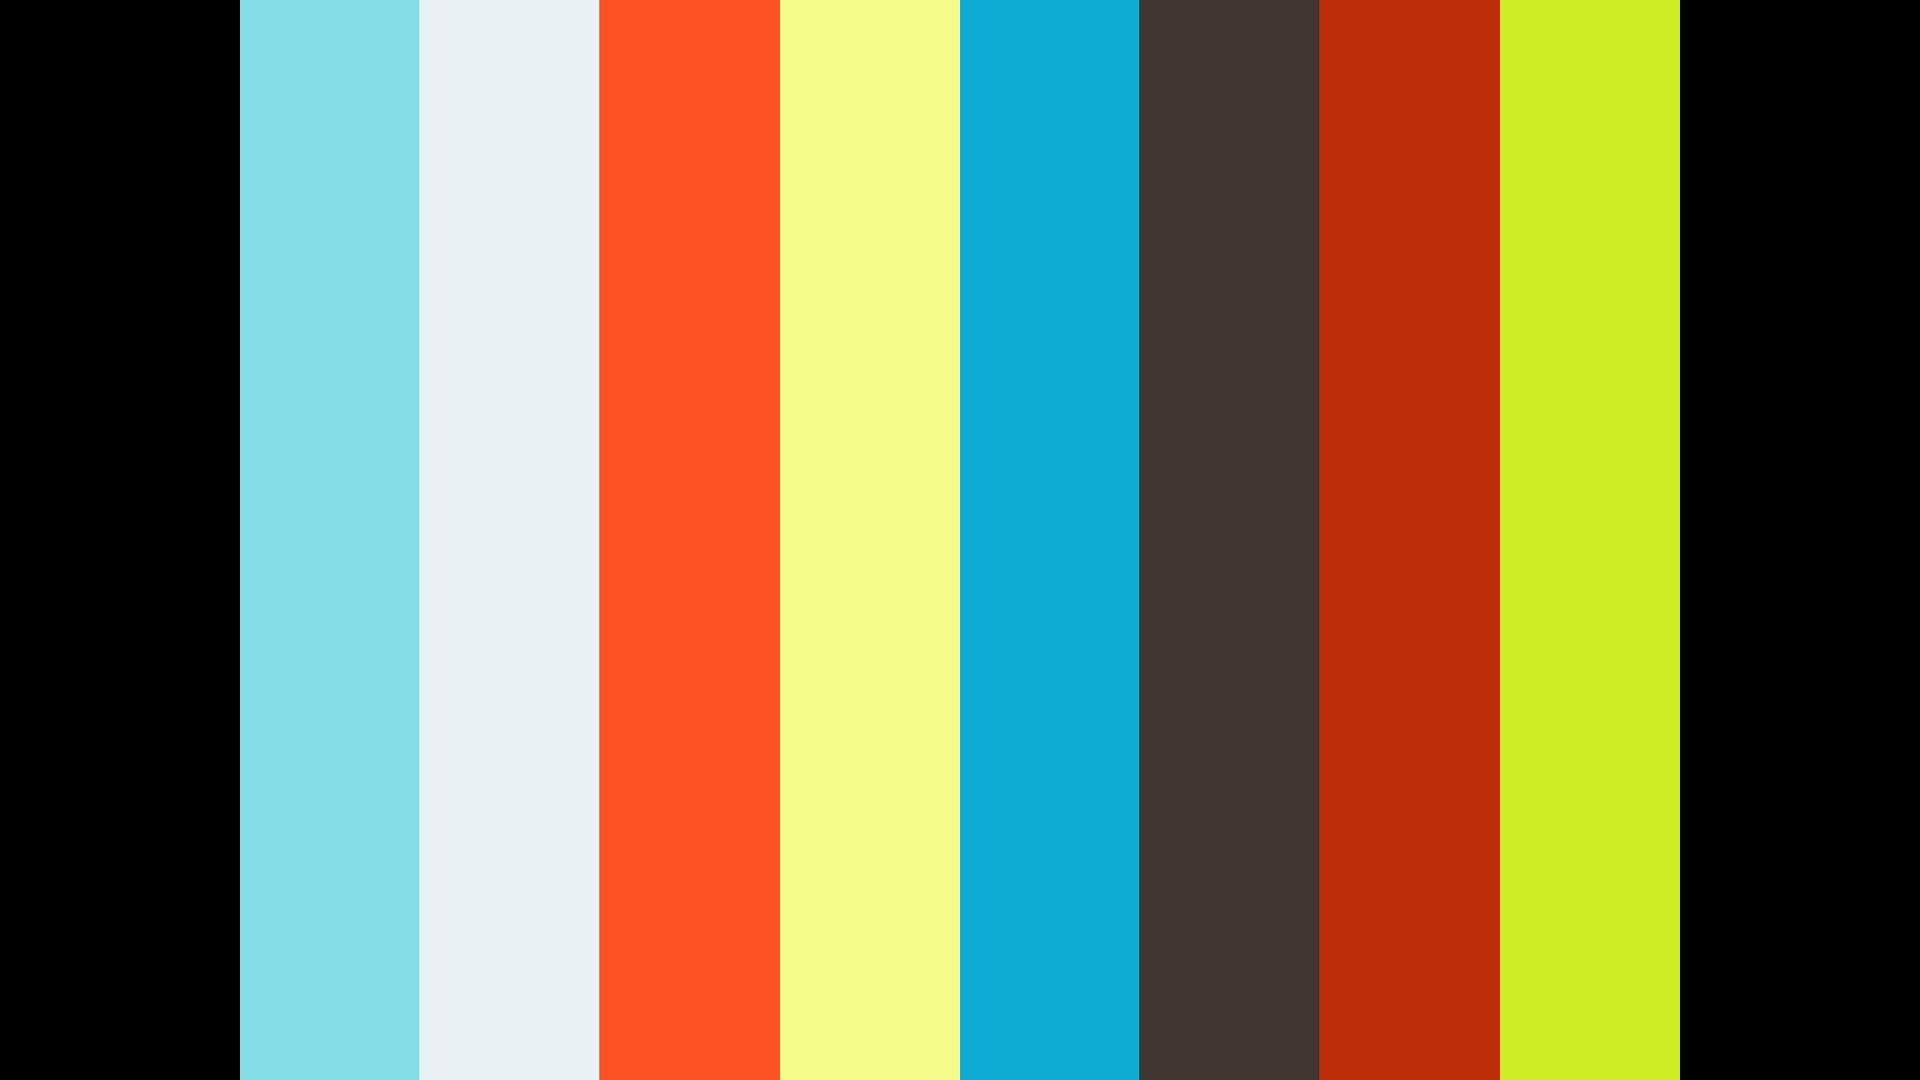 Olga Polishchuk, LookingGlass | RSA Conference 2019